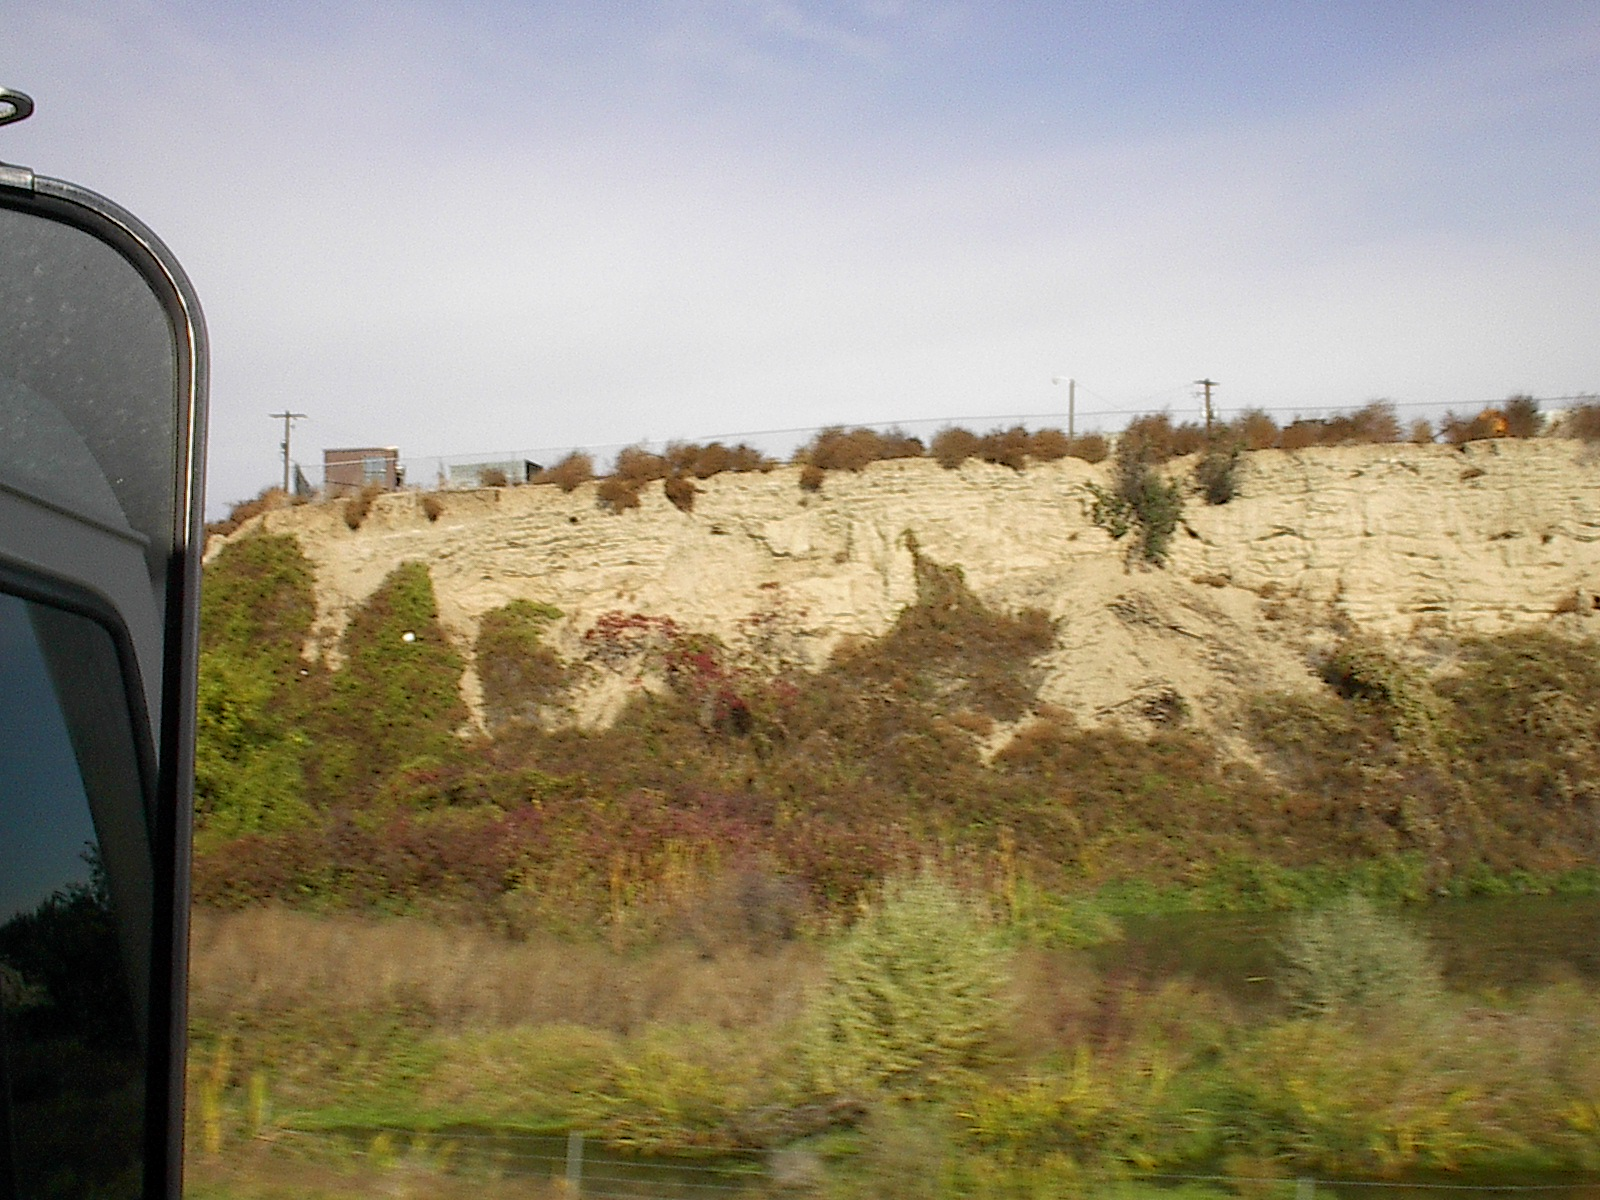 Layers from the floods along Highway 82 in the Yakima Valley